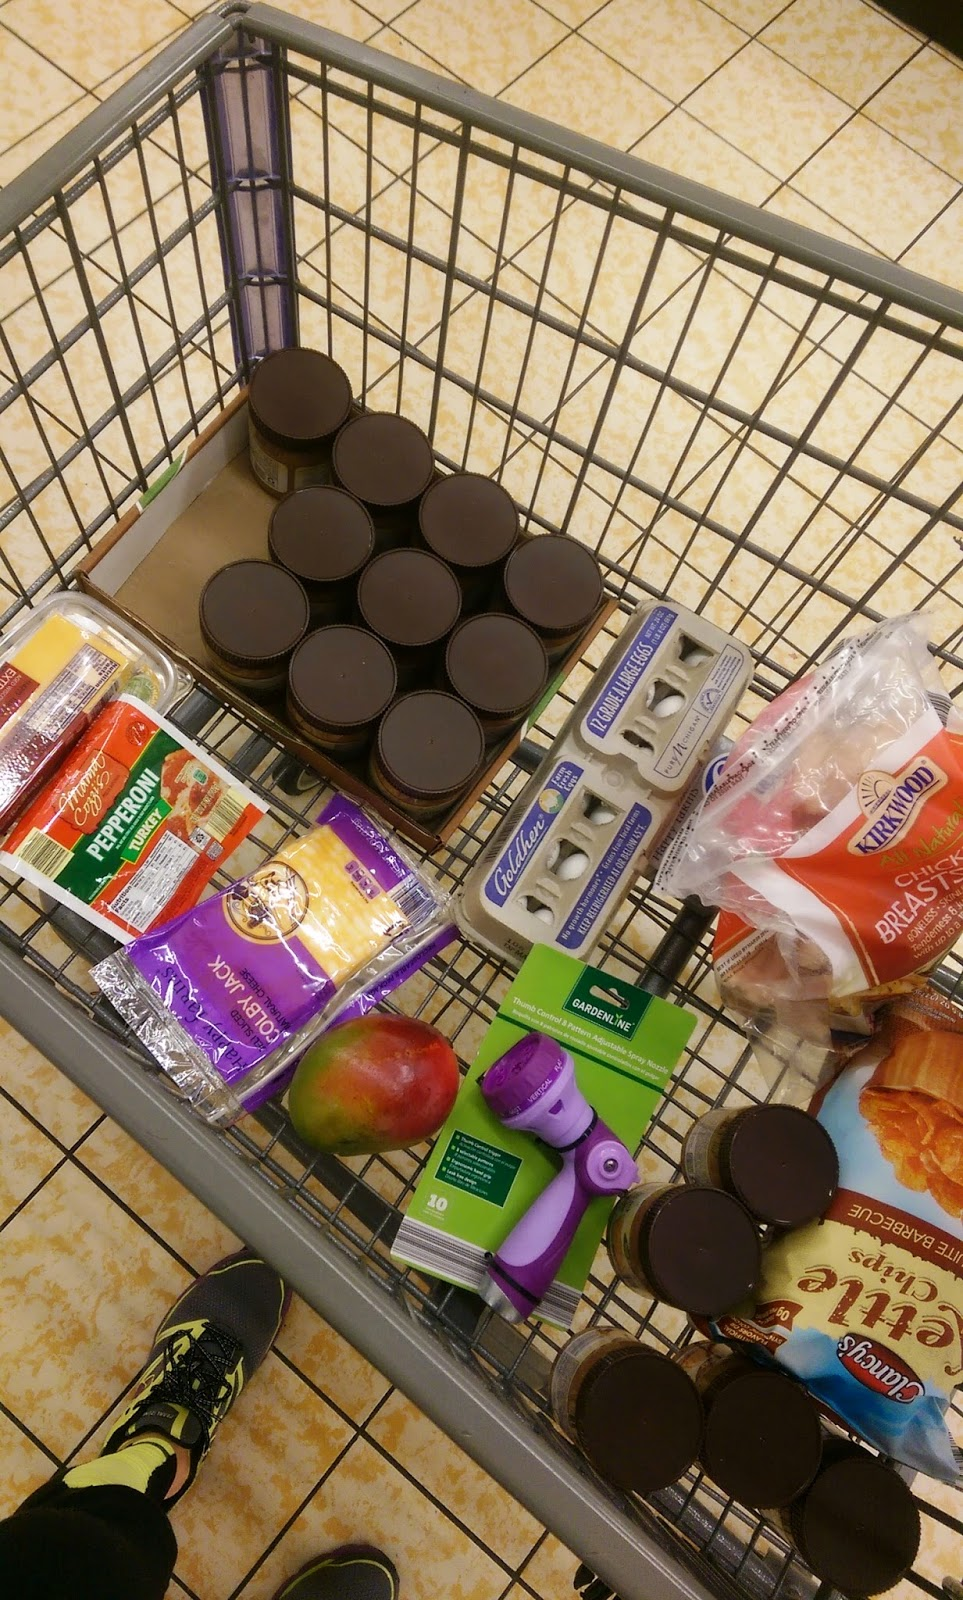 The Best Foods To Buy At Aldi The Nutritionist Reviews